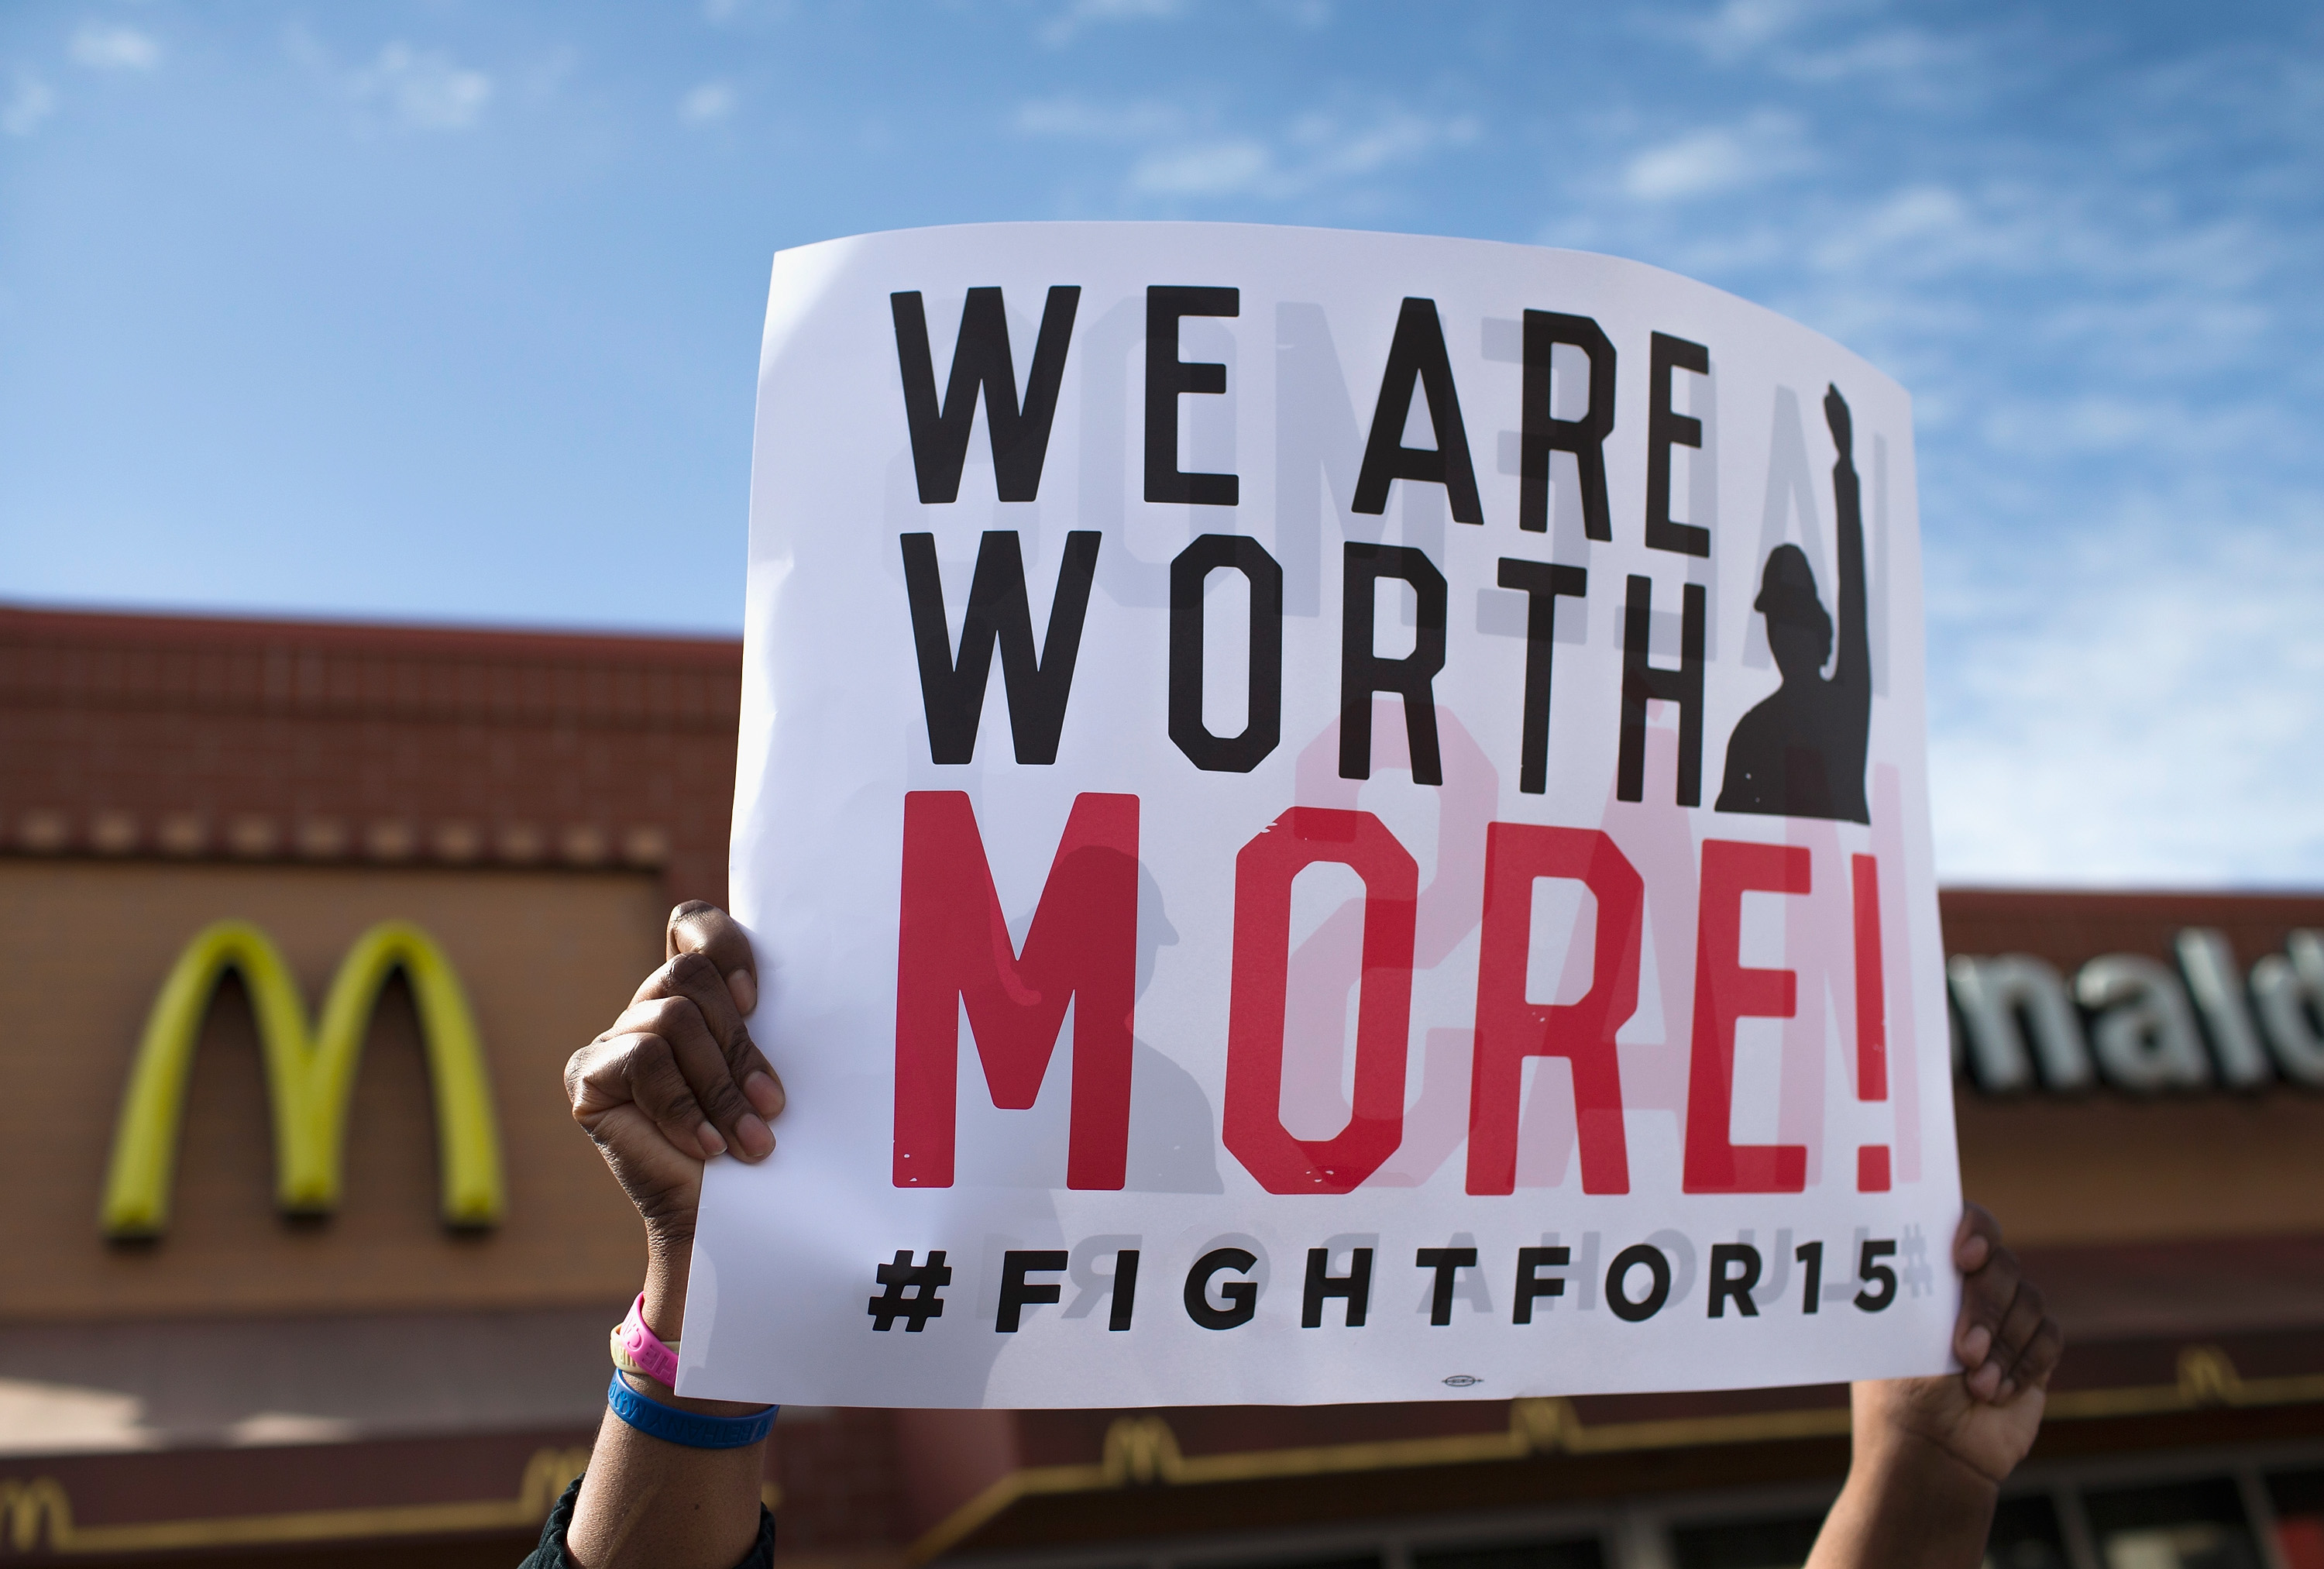 Demonstrators gather in front of a McDonald's restaurant to call for an increase in minimum wage on April 15, 2015 in Chicago, Illinois. The demonstration was one of many held nationwide to draw attention to the cause.